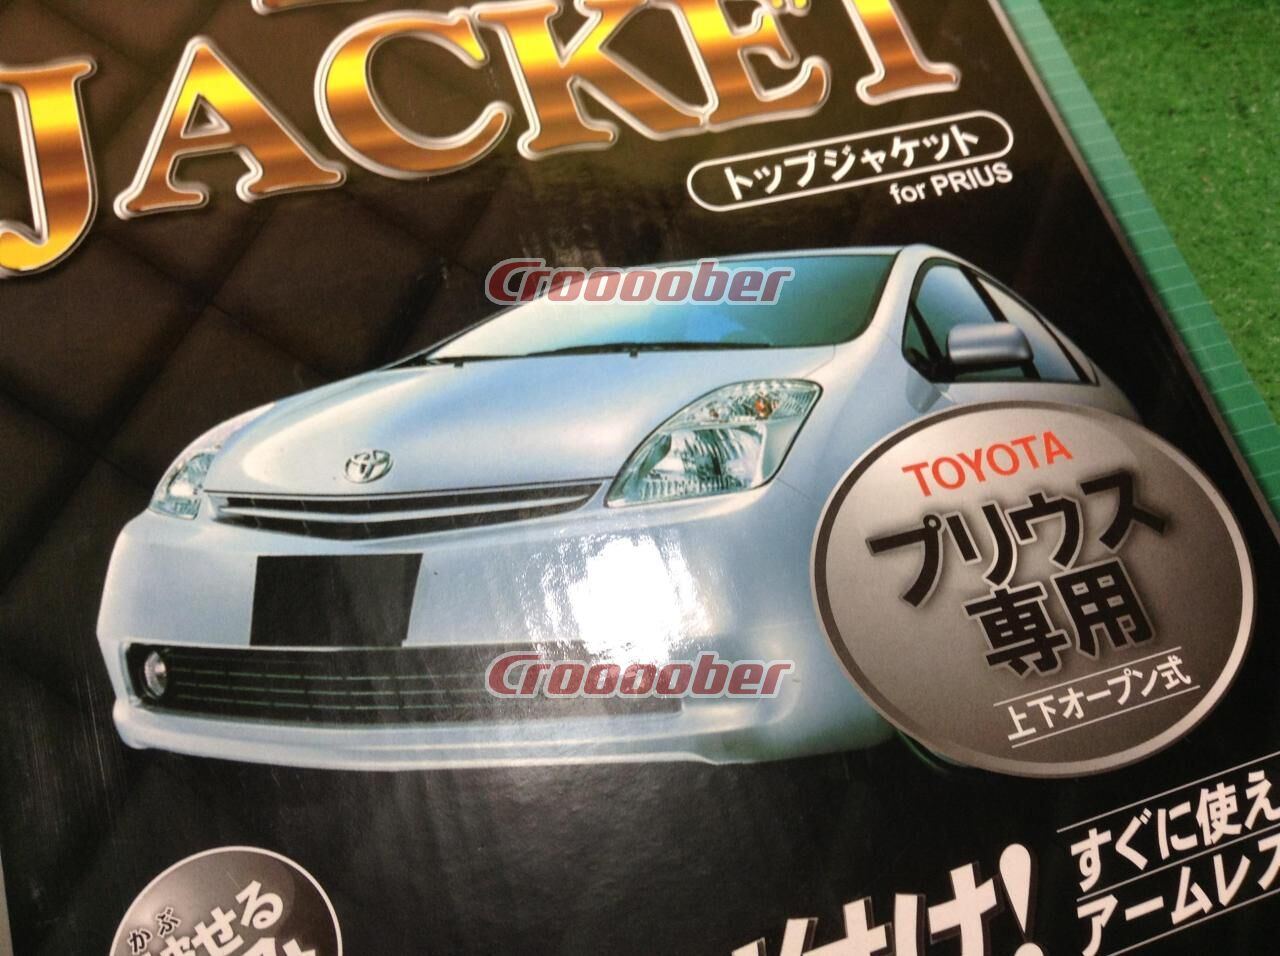 stickers stainless chr noah product prius camry toyota styling cover for auto arius steel door accessories avensis interior lock car badge